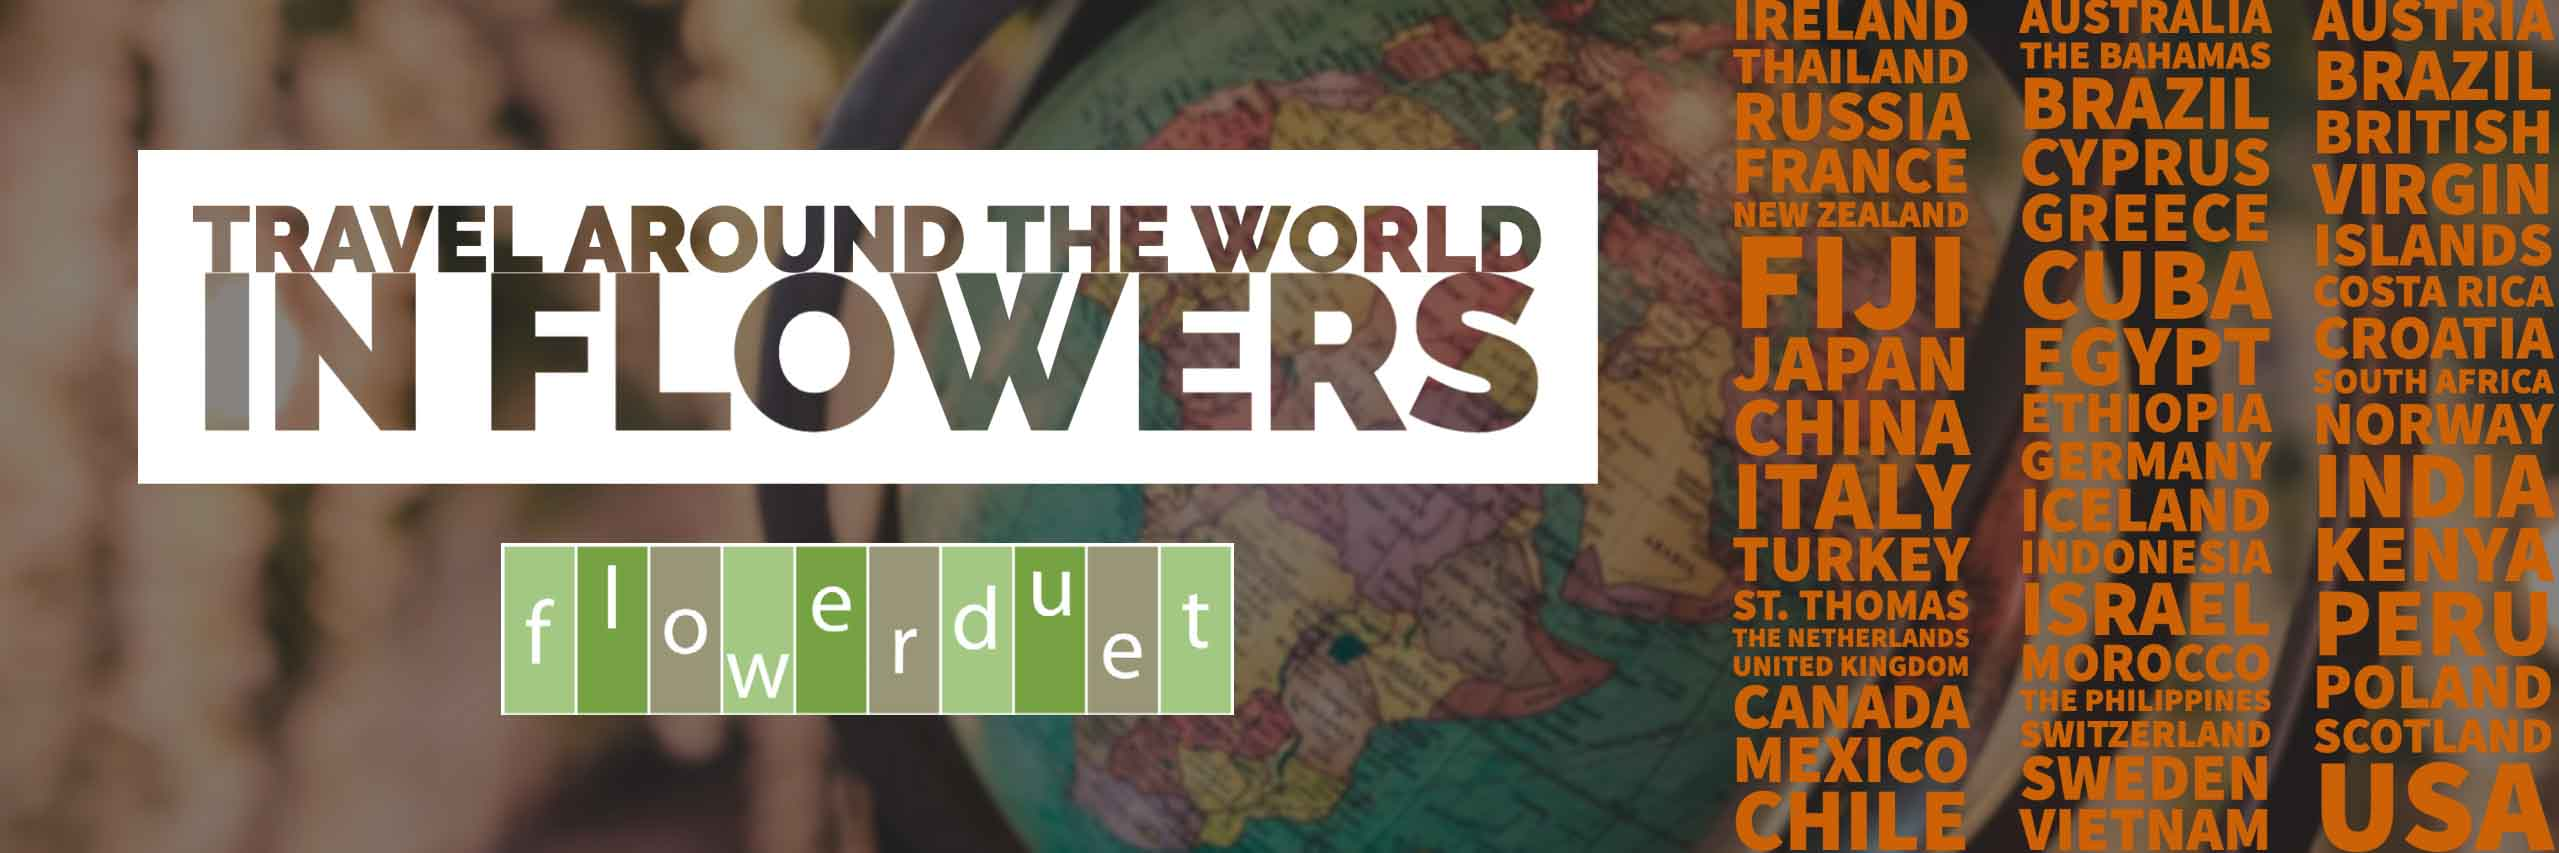 Travel the World in Flowers